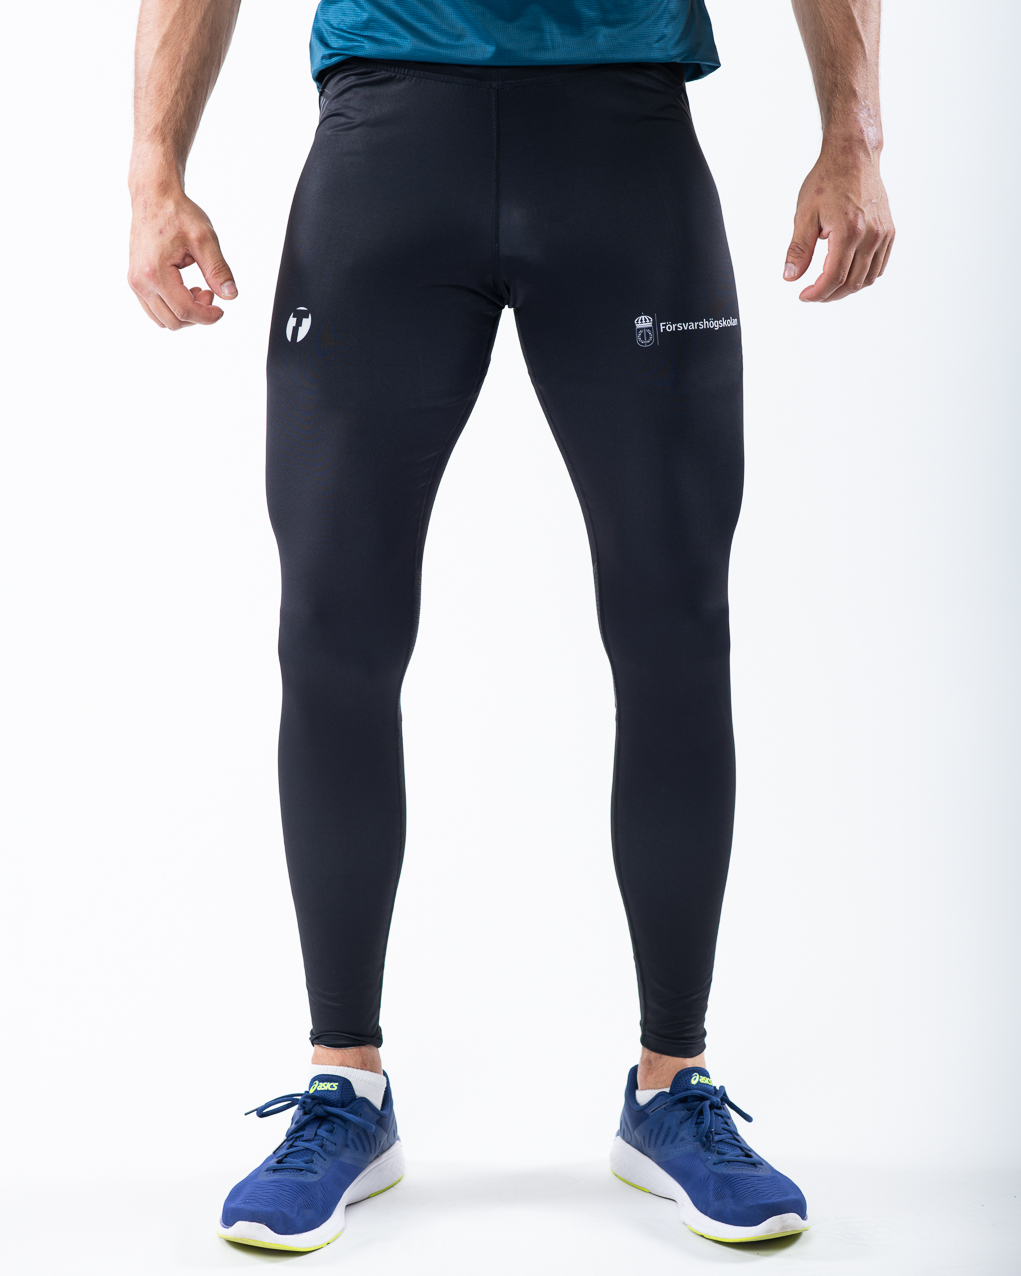 Men's tights front